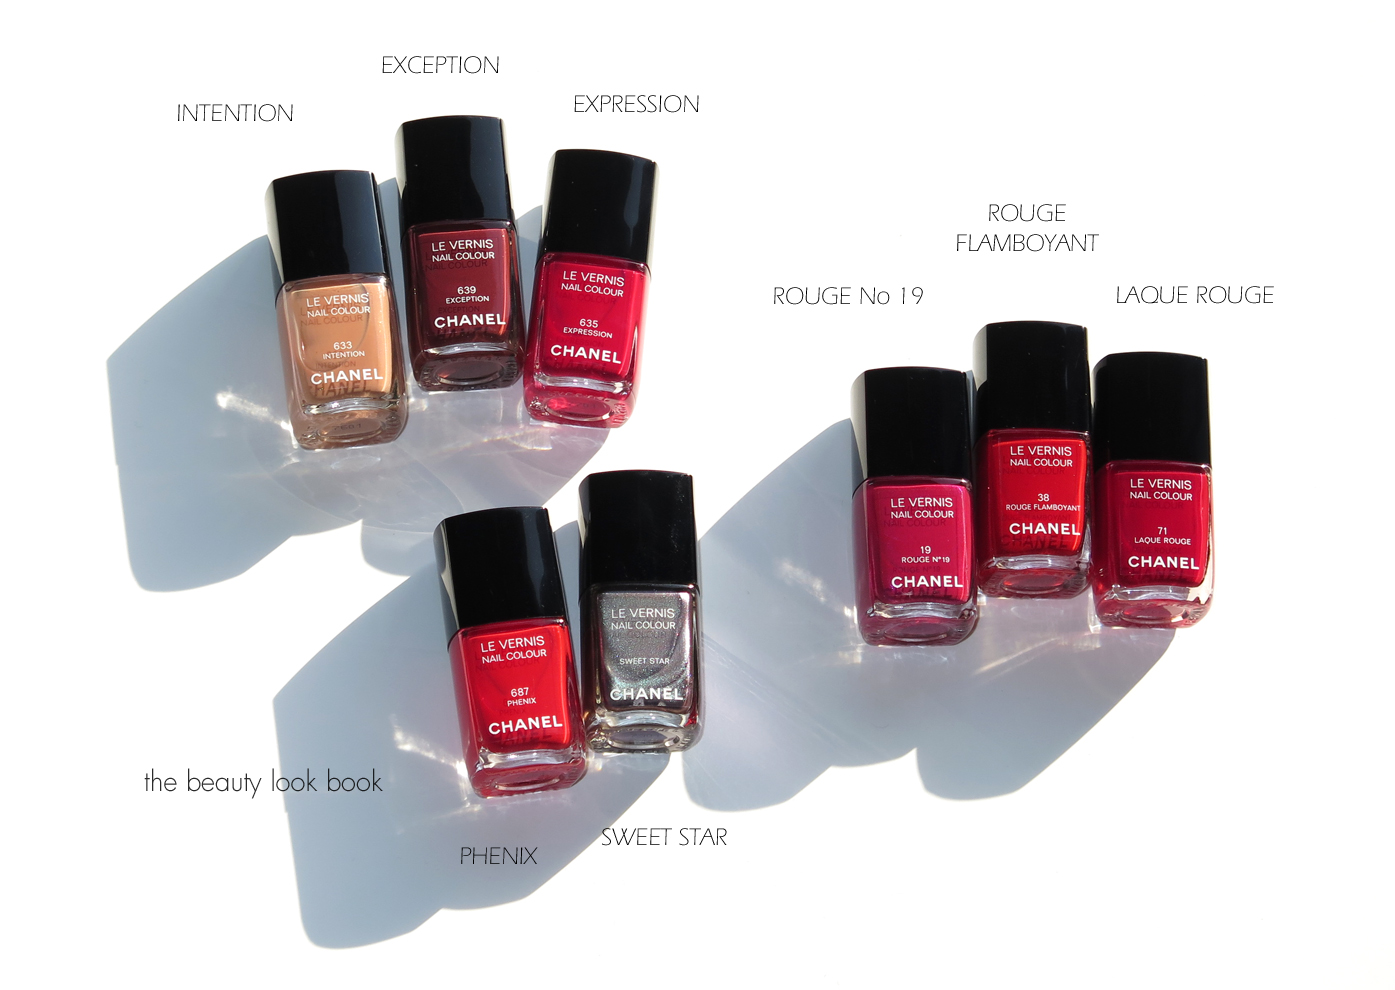 Sneak Peek: New Chanel Le Vernis Shades | The Beauty Look Book